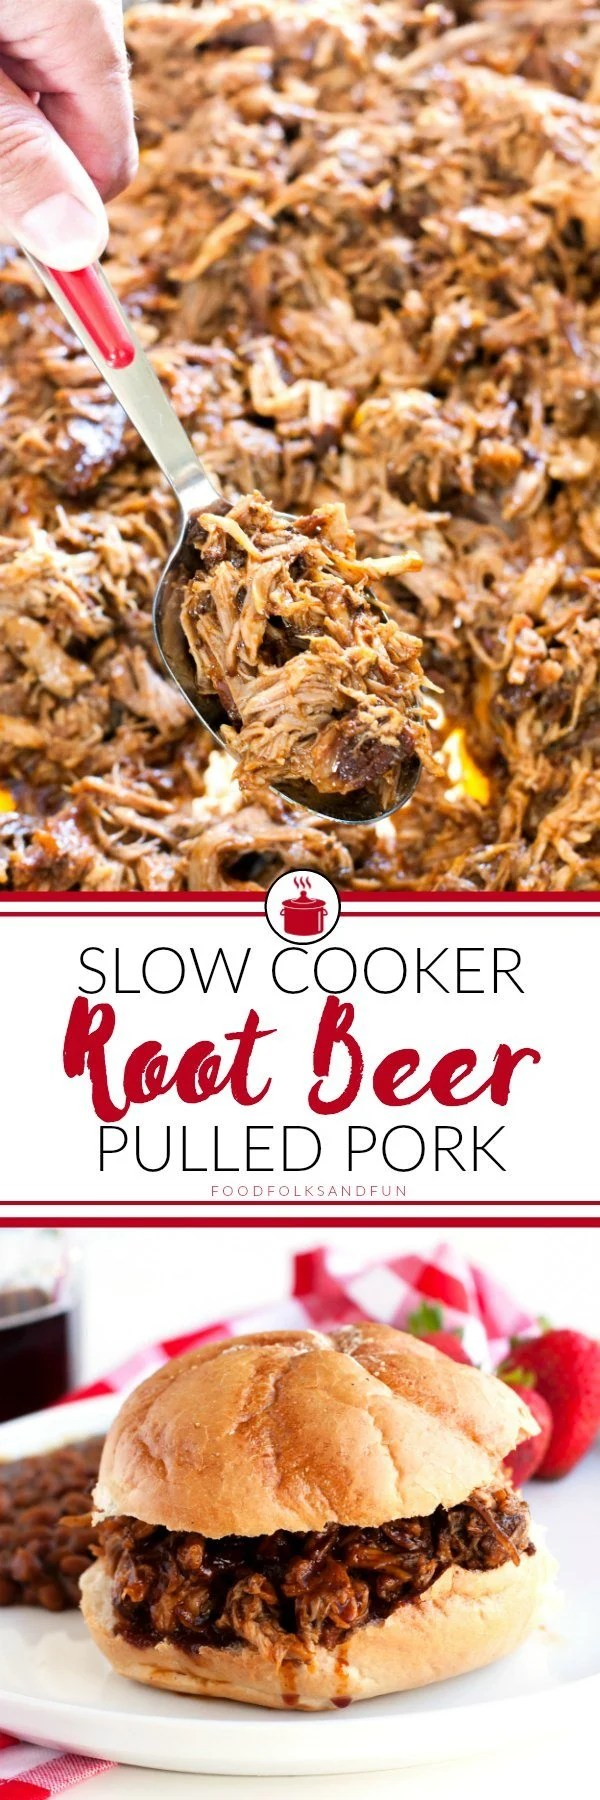 Picture collage of root beer pulled pork for Pinterest.